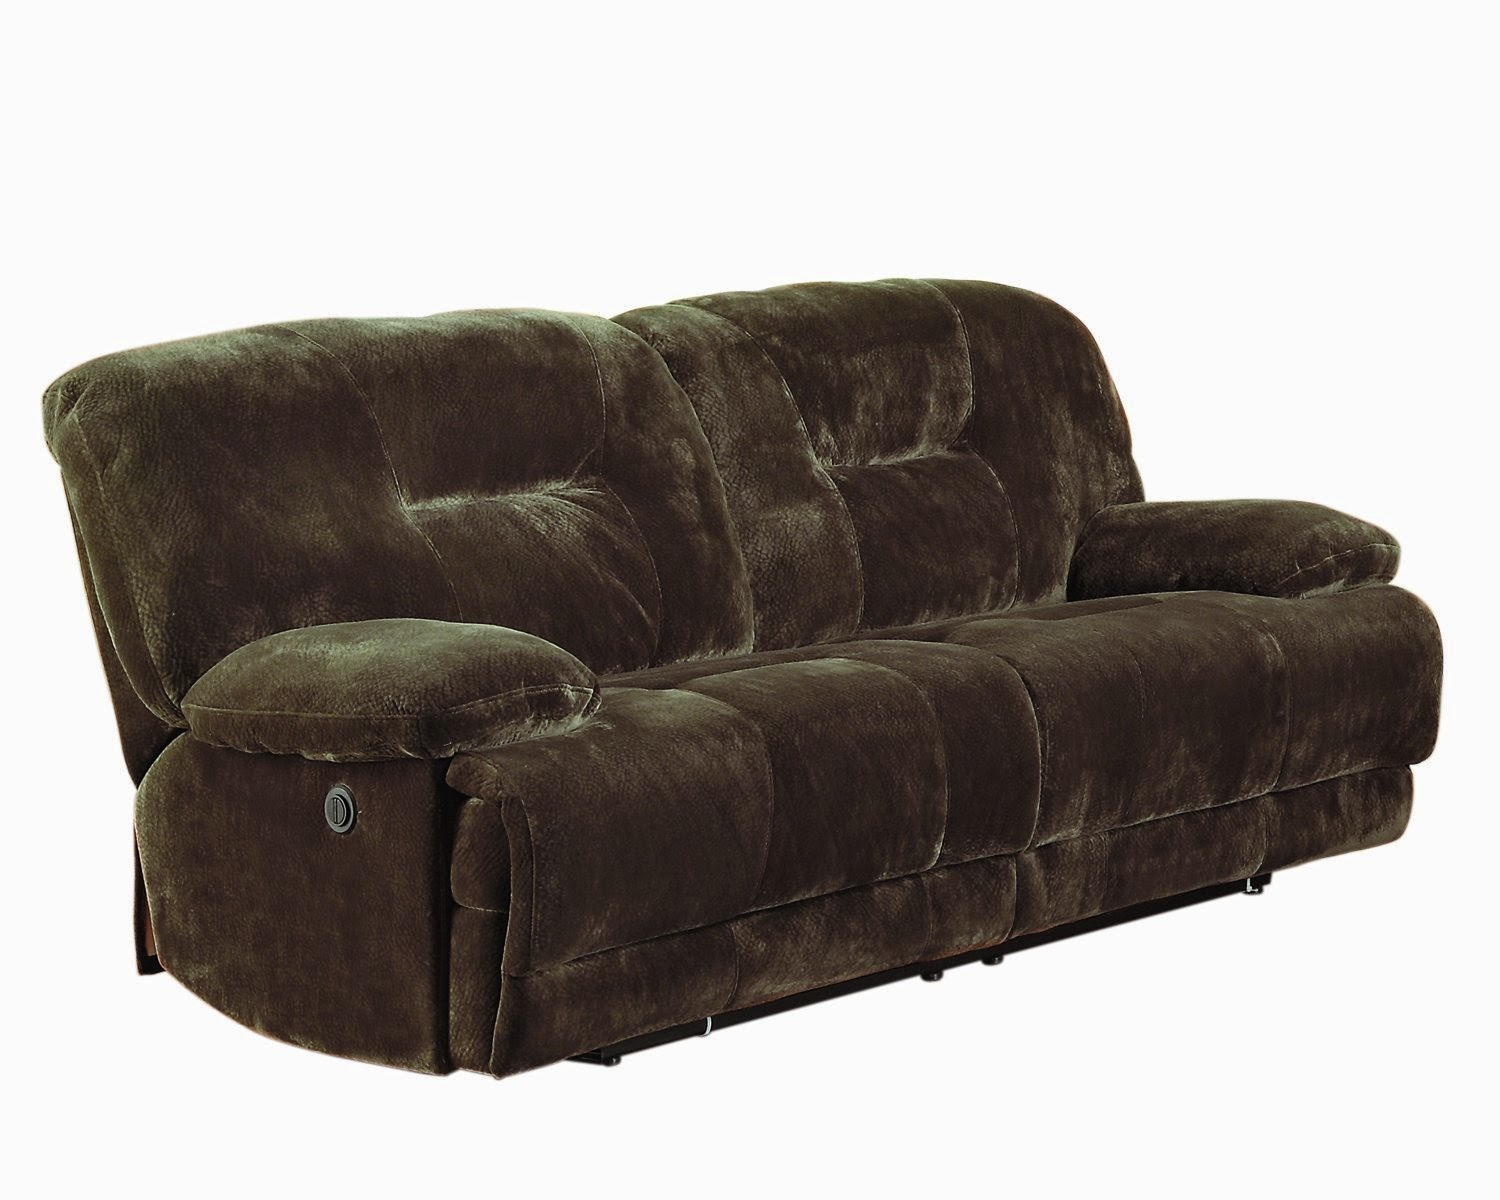 Top Seller Reclining And Recliner Sofa Loveseat Reclining